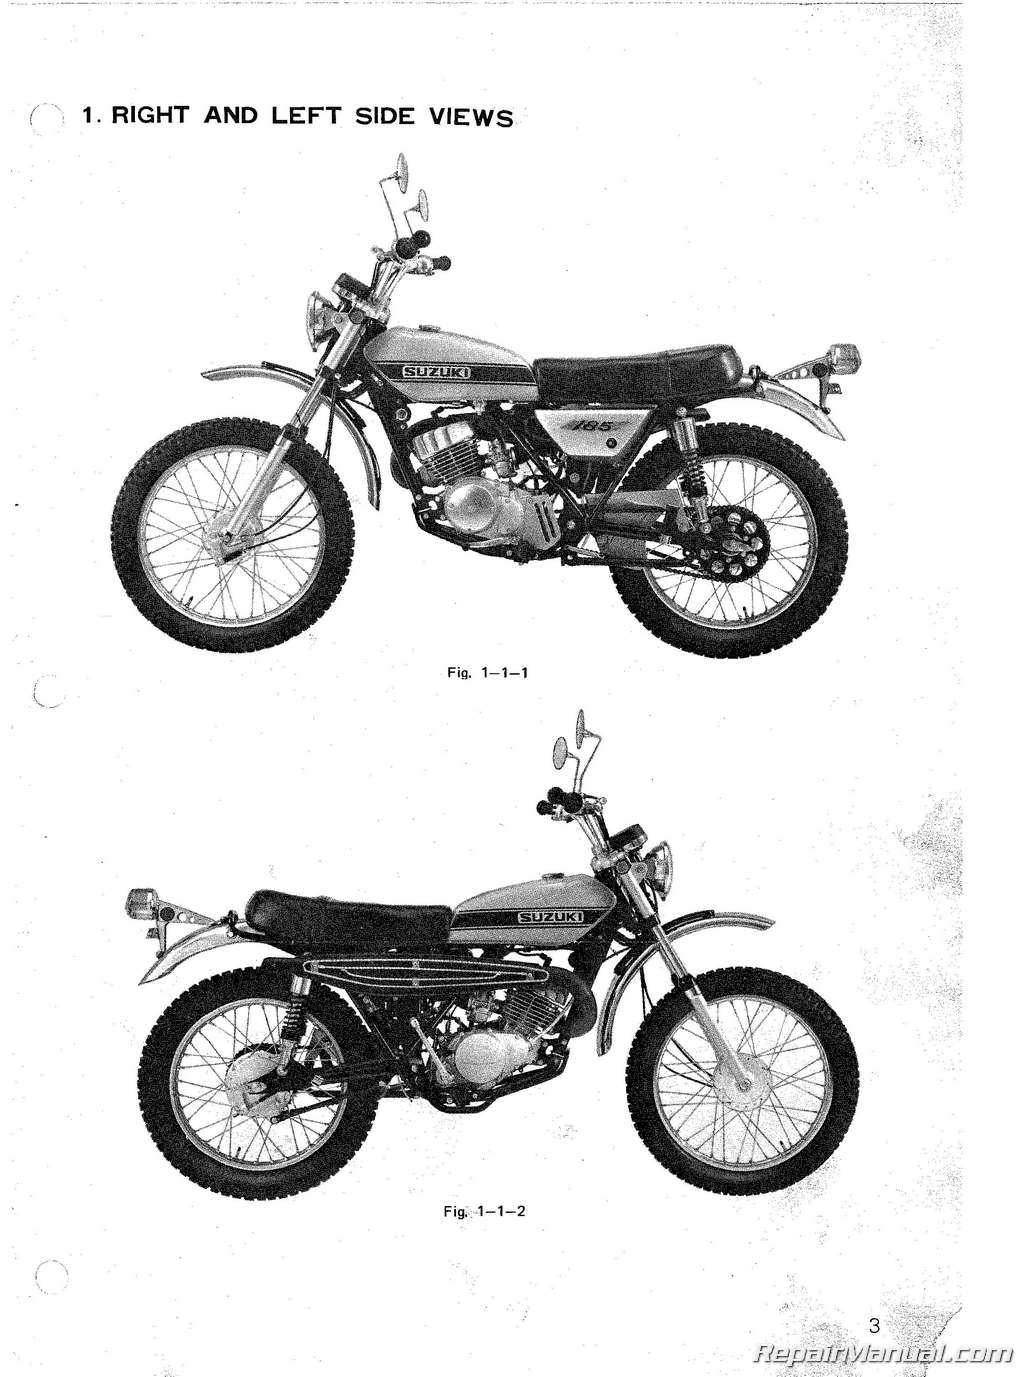 Pages from SUZ S TS185_Page_2 1971 1976 suzuki ts185 sierra supplemental motorcycle service manual,1974 Suzuki Ts 185 Wiring Diagram